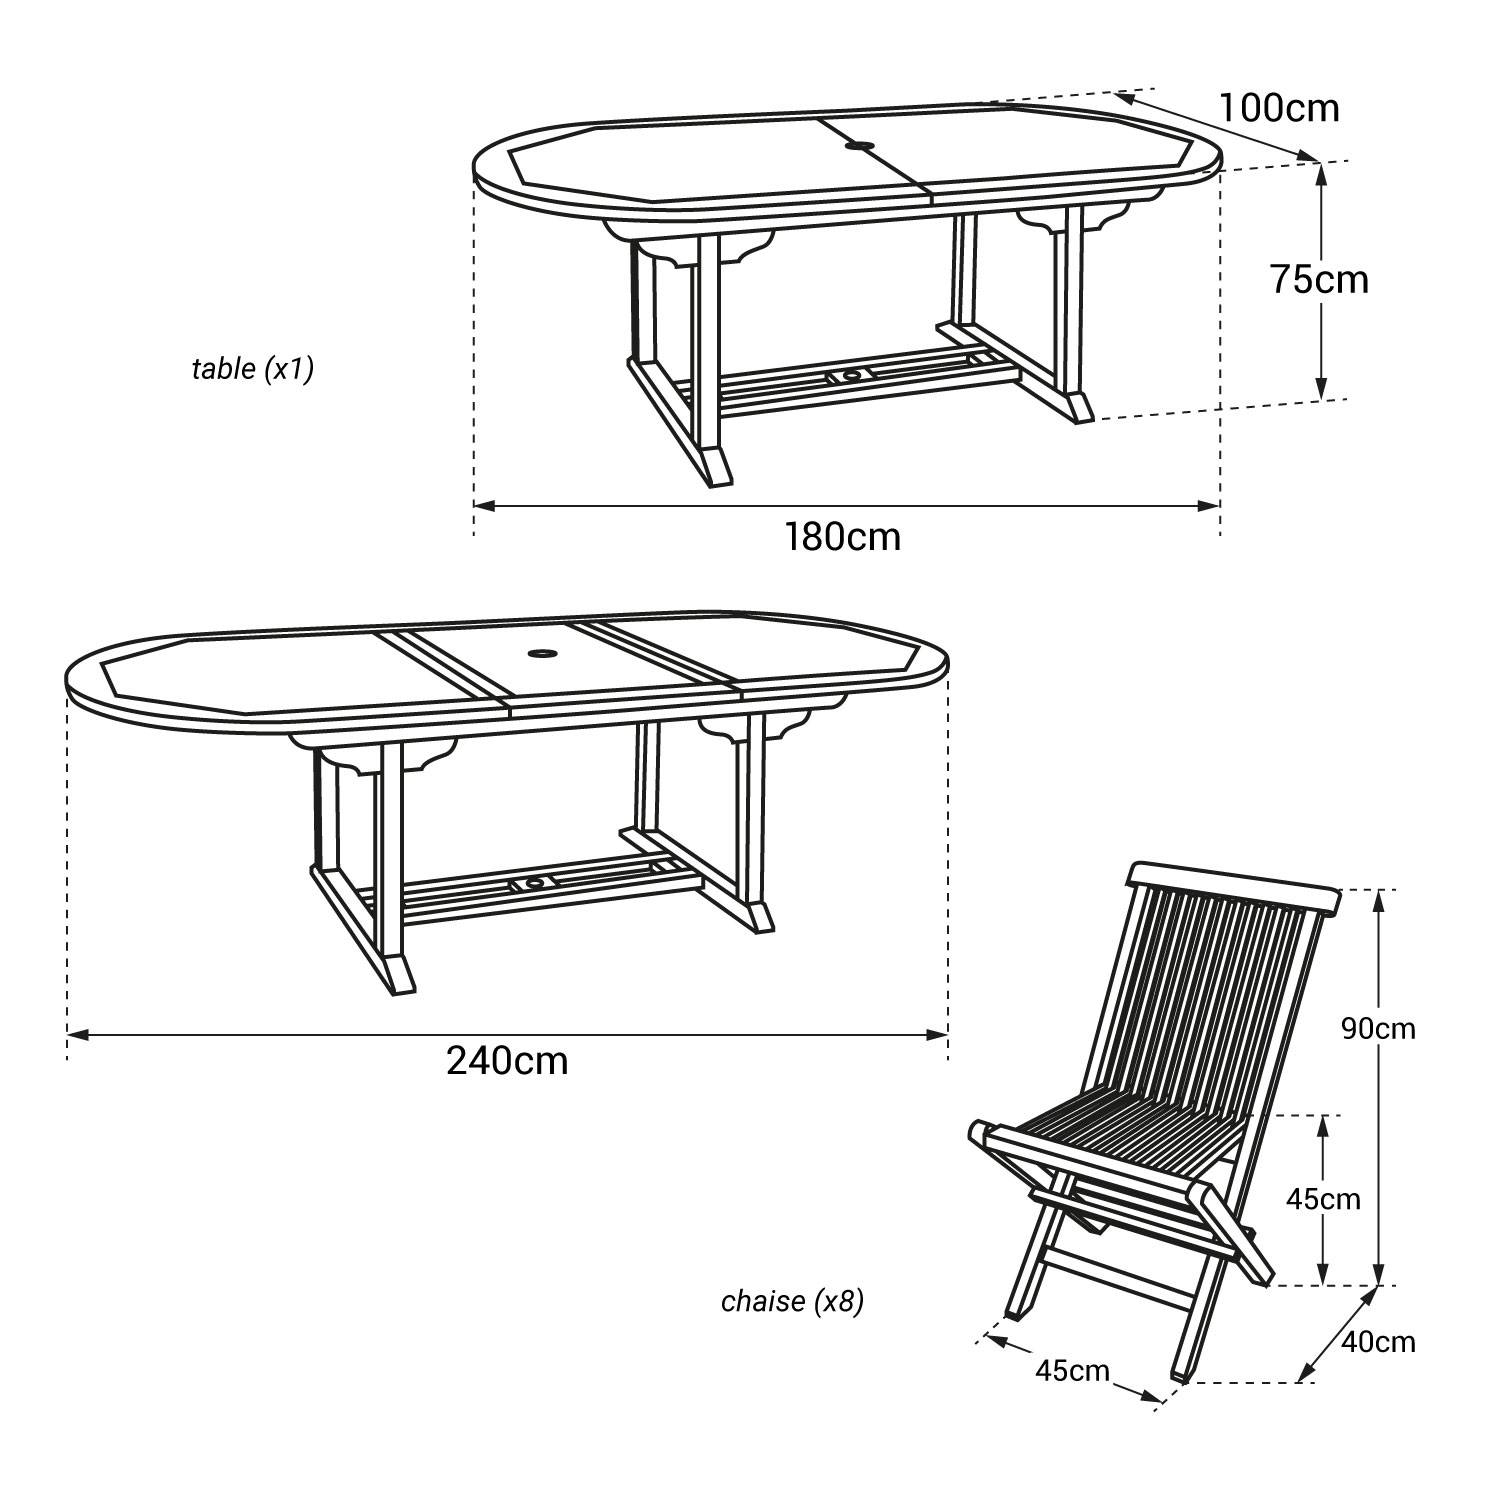 Salon de jardin LOMBOK - table extensible ovale en teck - 8 places